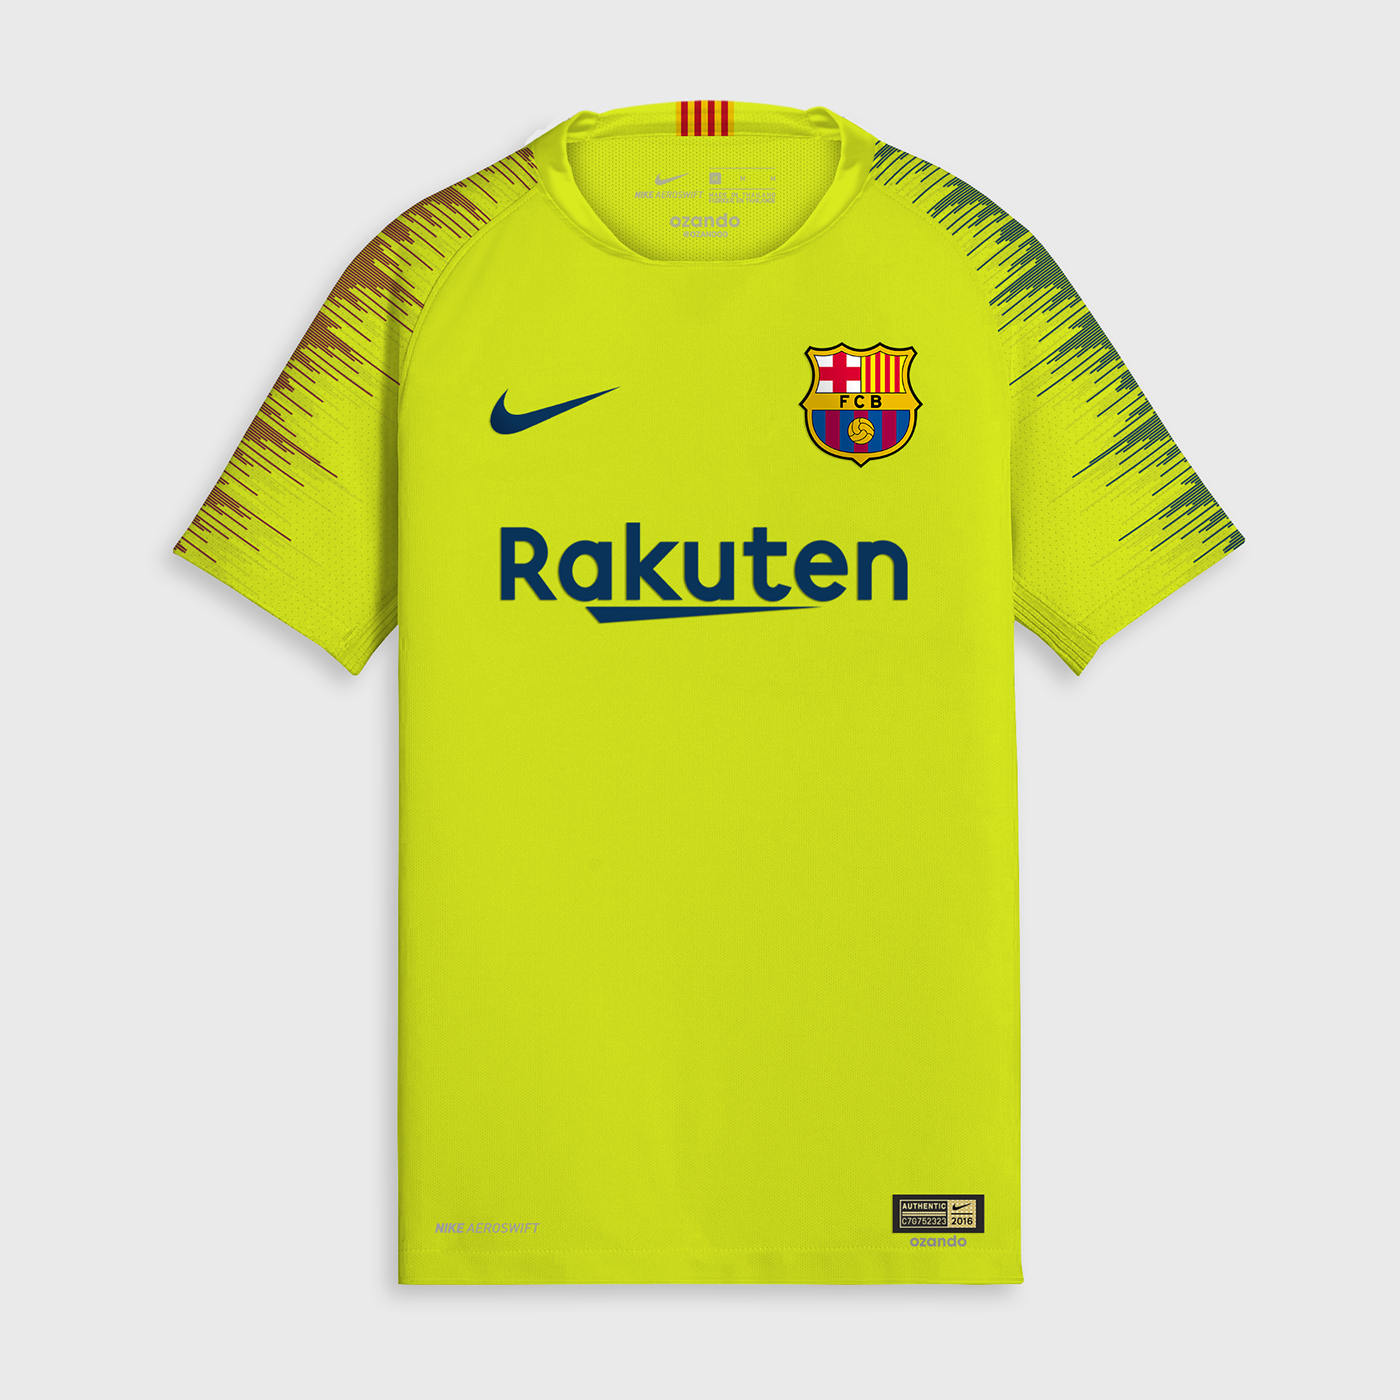 more photos 0c67b 621d8 Nike 2018-2019 | Home, Away & 3rd Kits on Behance